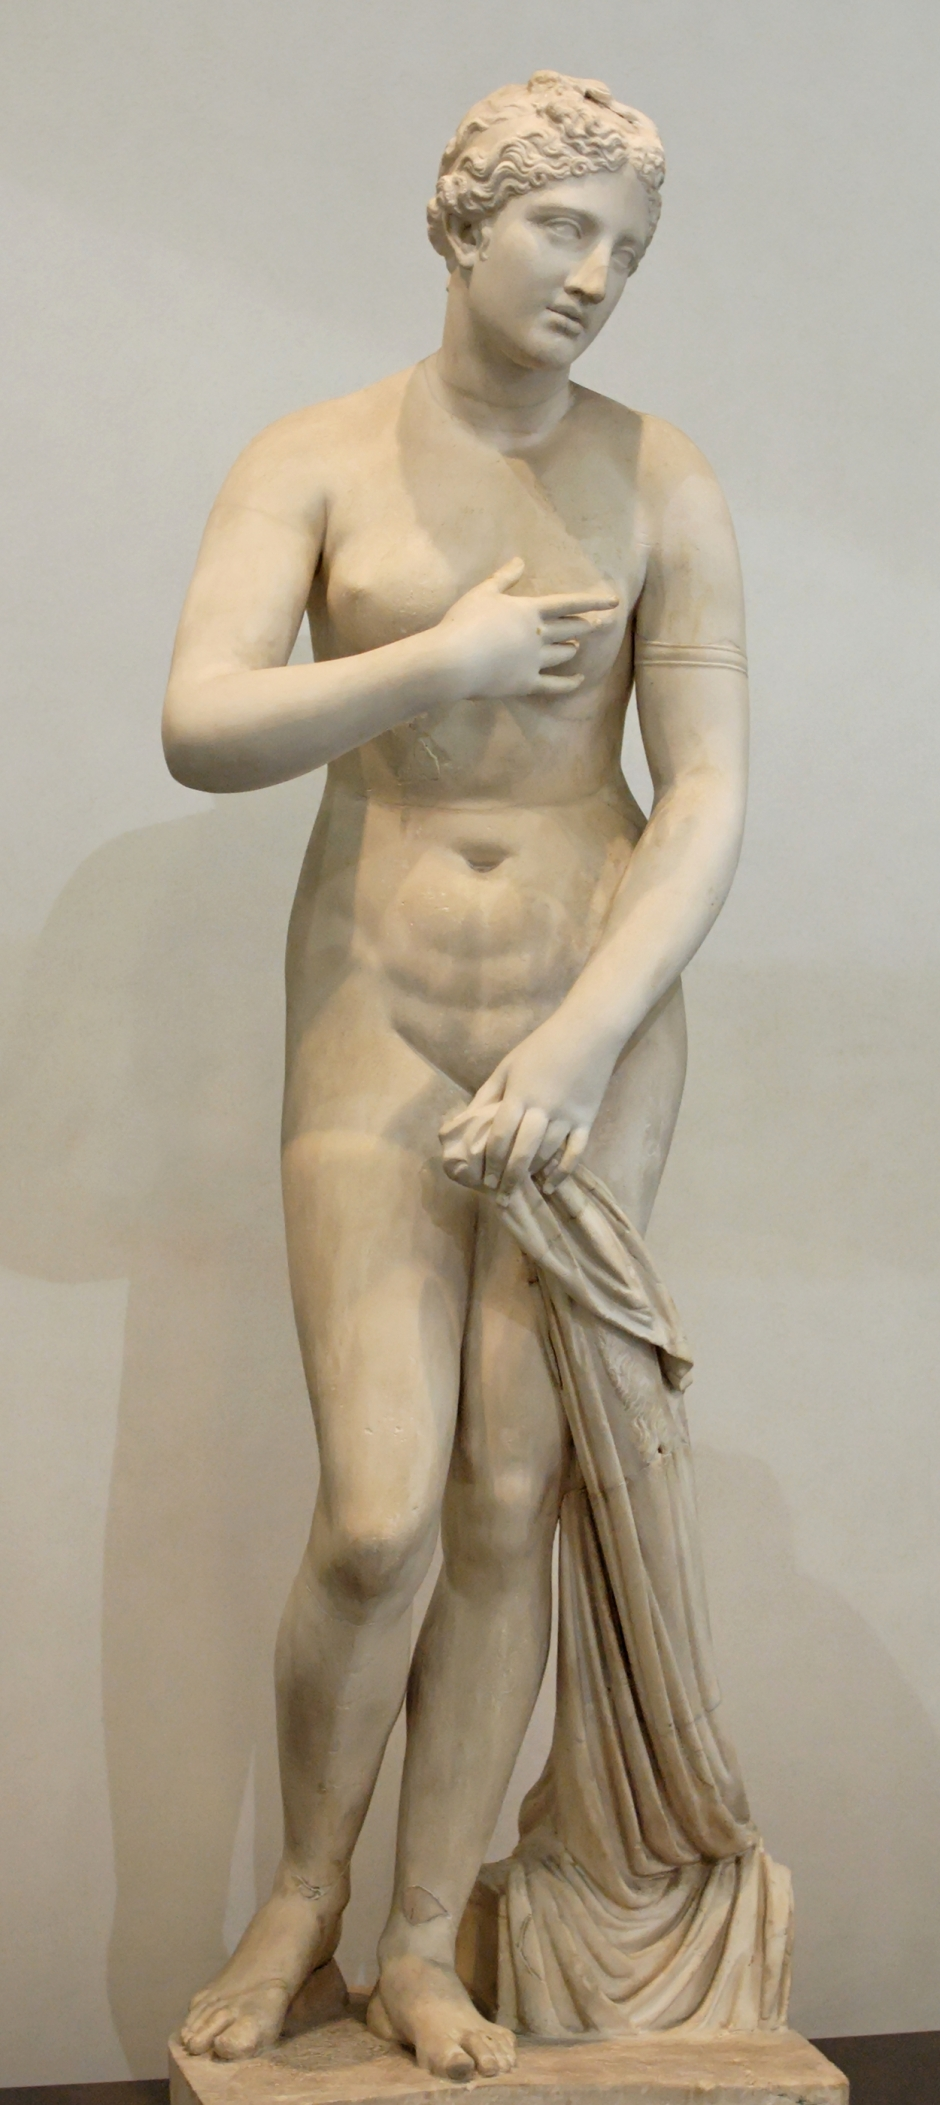 The Aphrodite of Menophantos, dating from 1C BC is one of many variants of a sculptural pose called the Venus Pudica (modest Venus). It derives from a sculpture by Praxiteles but has been adjusted in two key ways. Firstly, Venus is adopting an aware and self-conscious pose and, secondly, the position of her arms has been adjusted to protect her modesty. That intrinsic modesty has made this one of the most enduring forms of female nude.